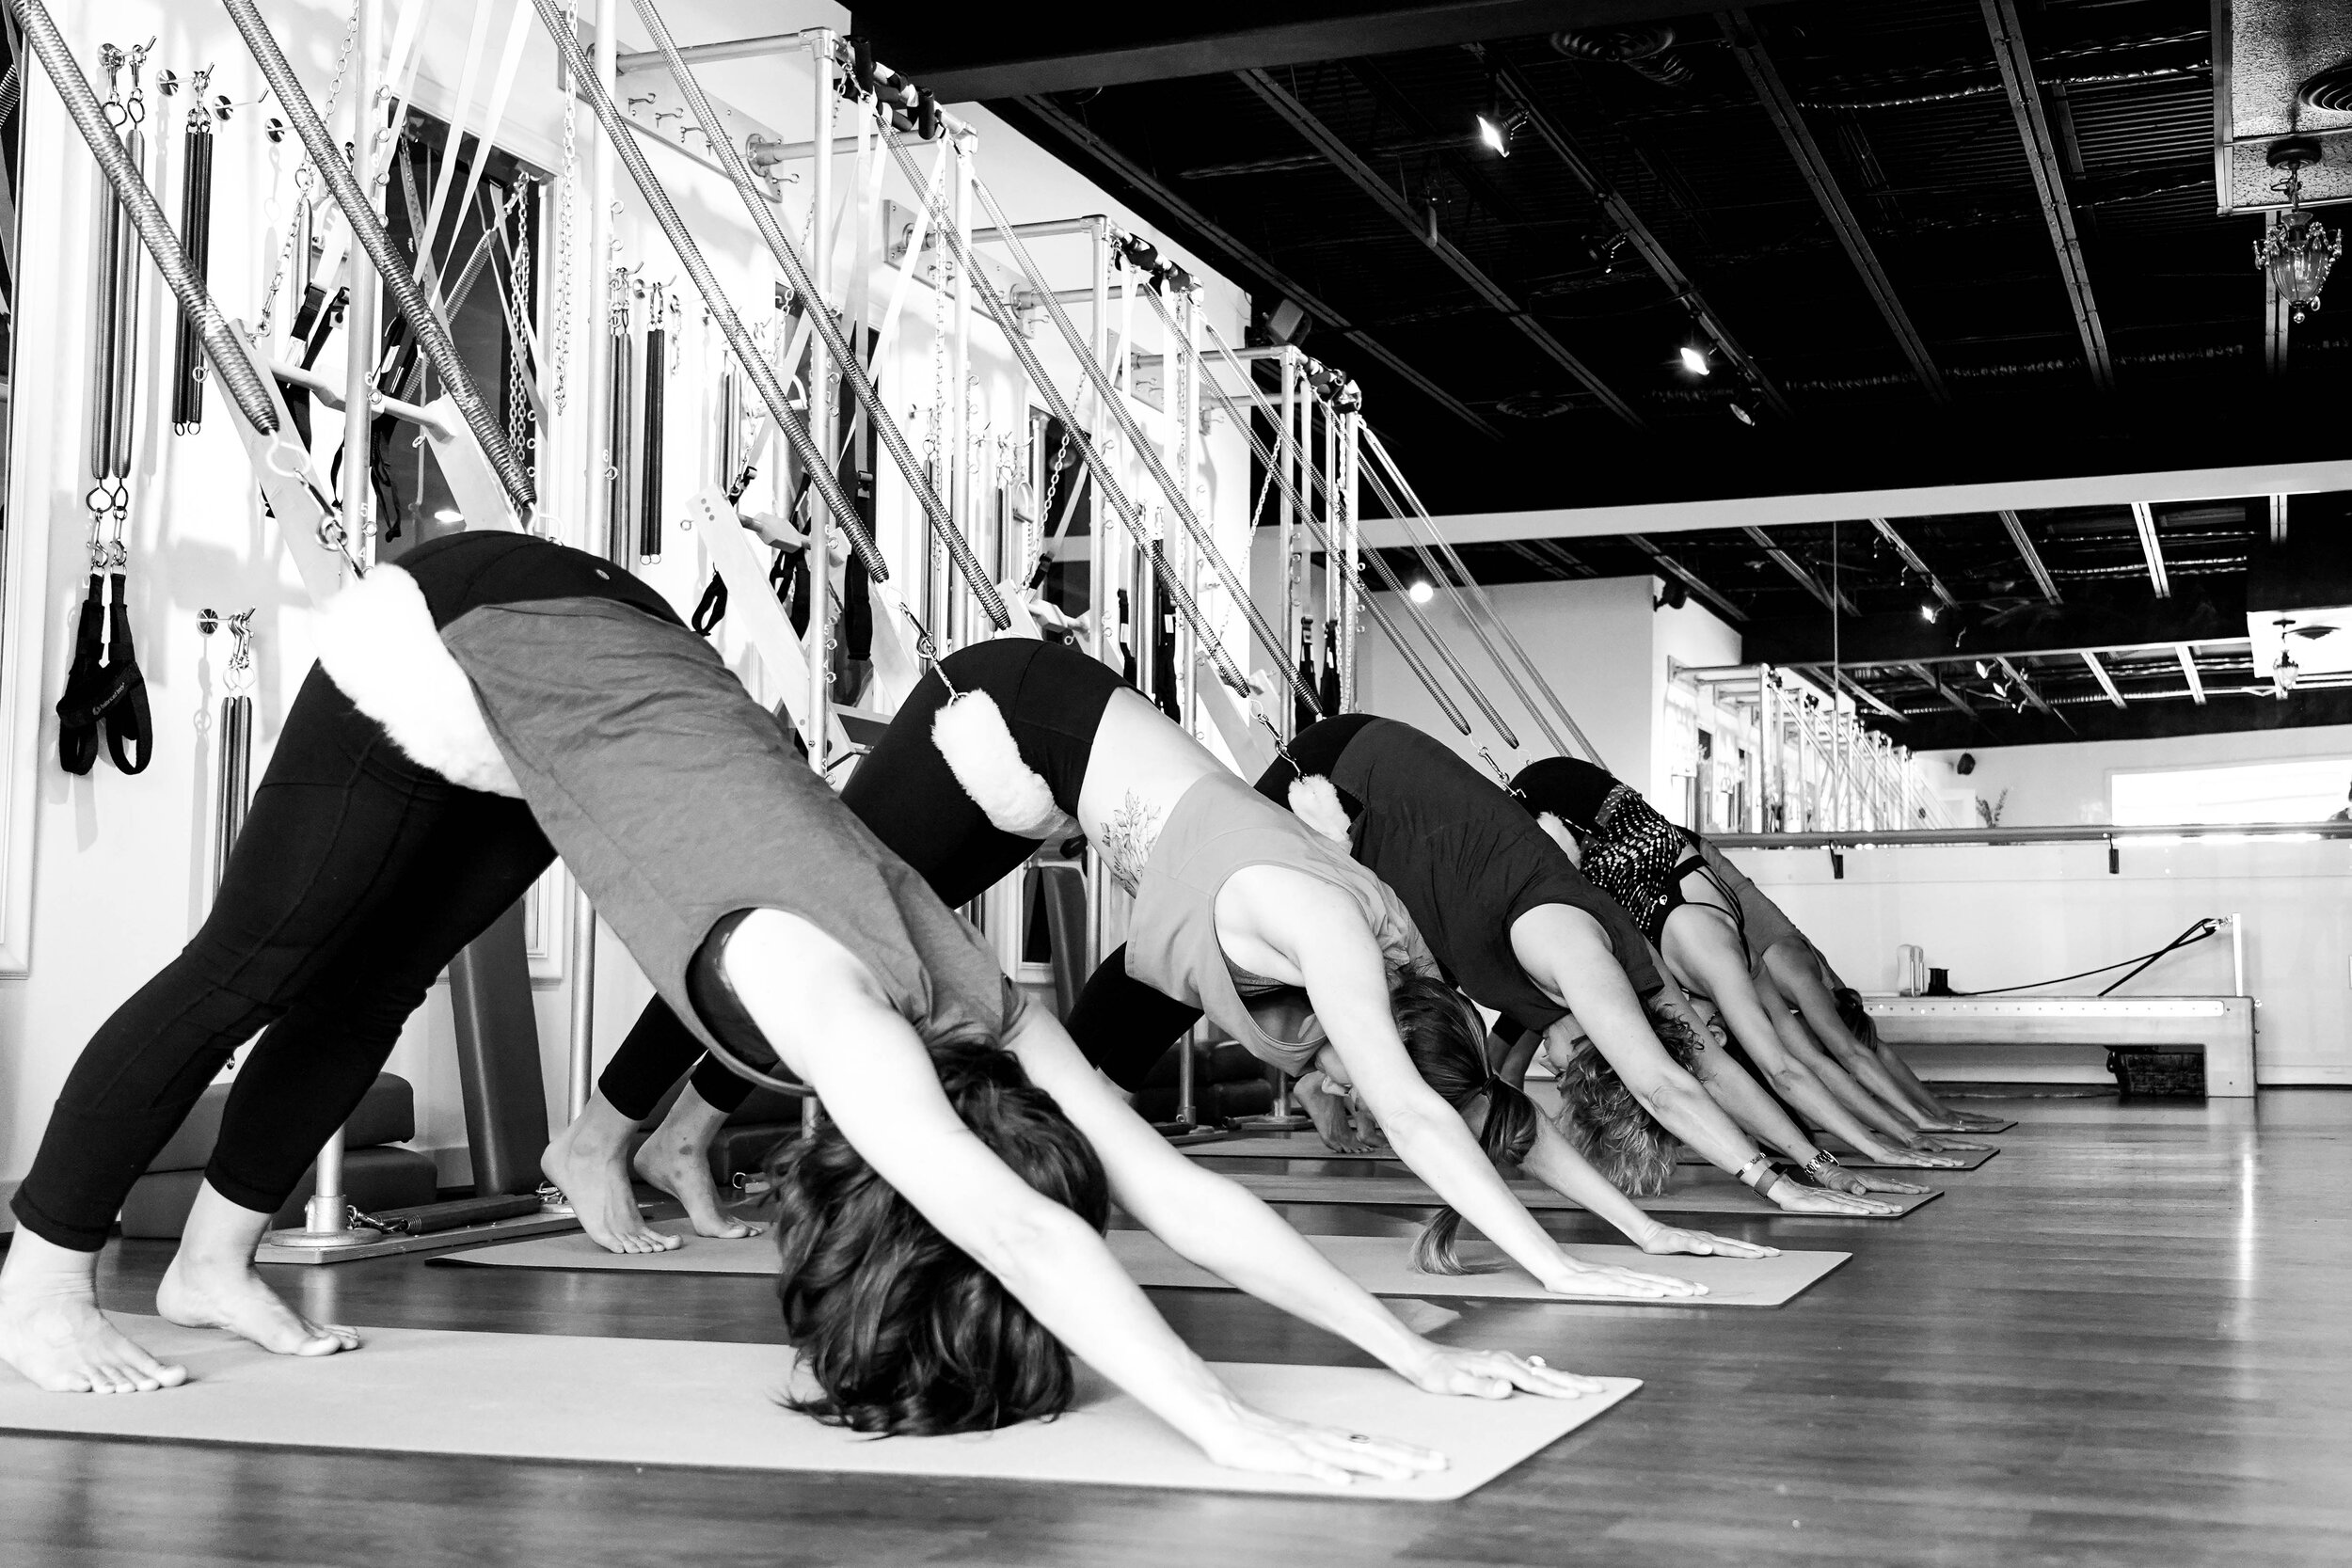 pilates tower & chill - Release, flow, move. A flowing 50 minute class using traditional Pilates Tower springs to support your body so you feel muscles activating while tension is being released.